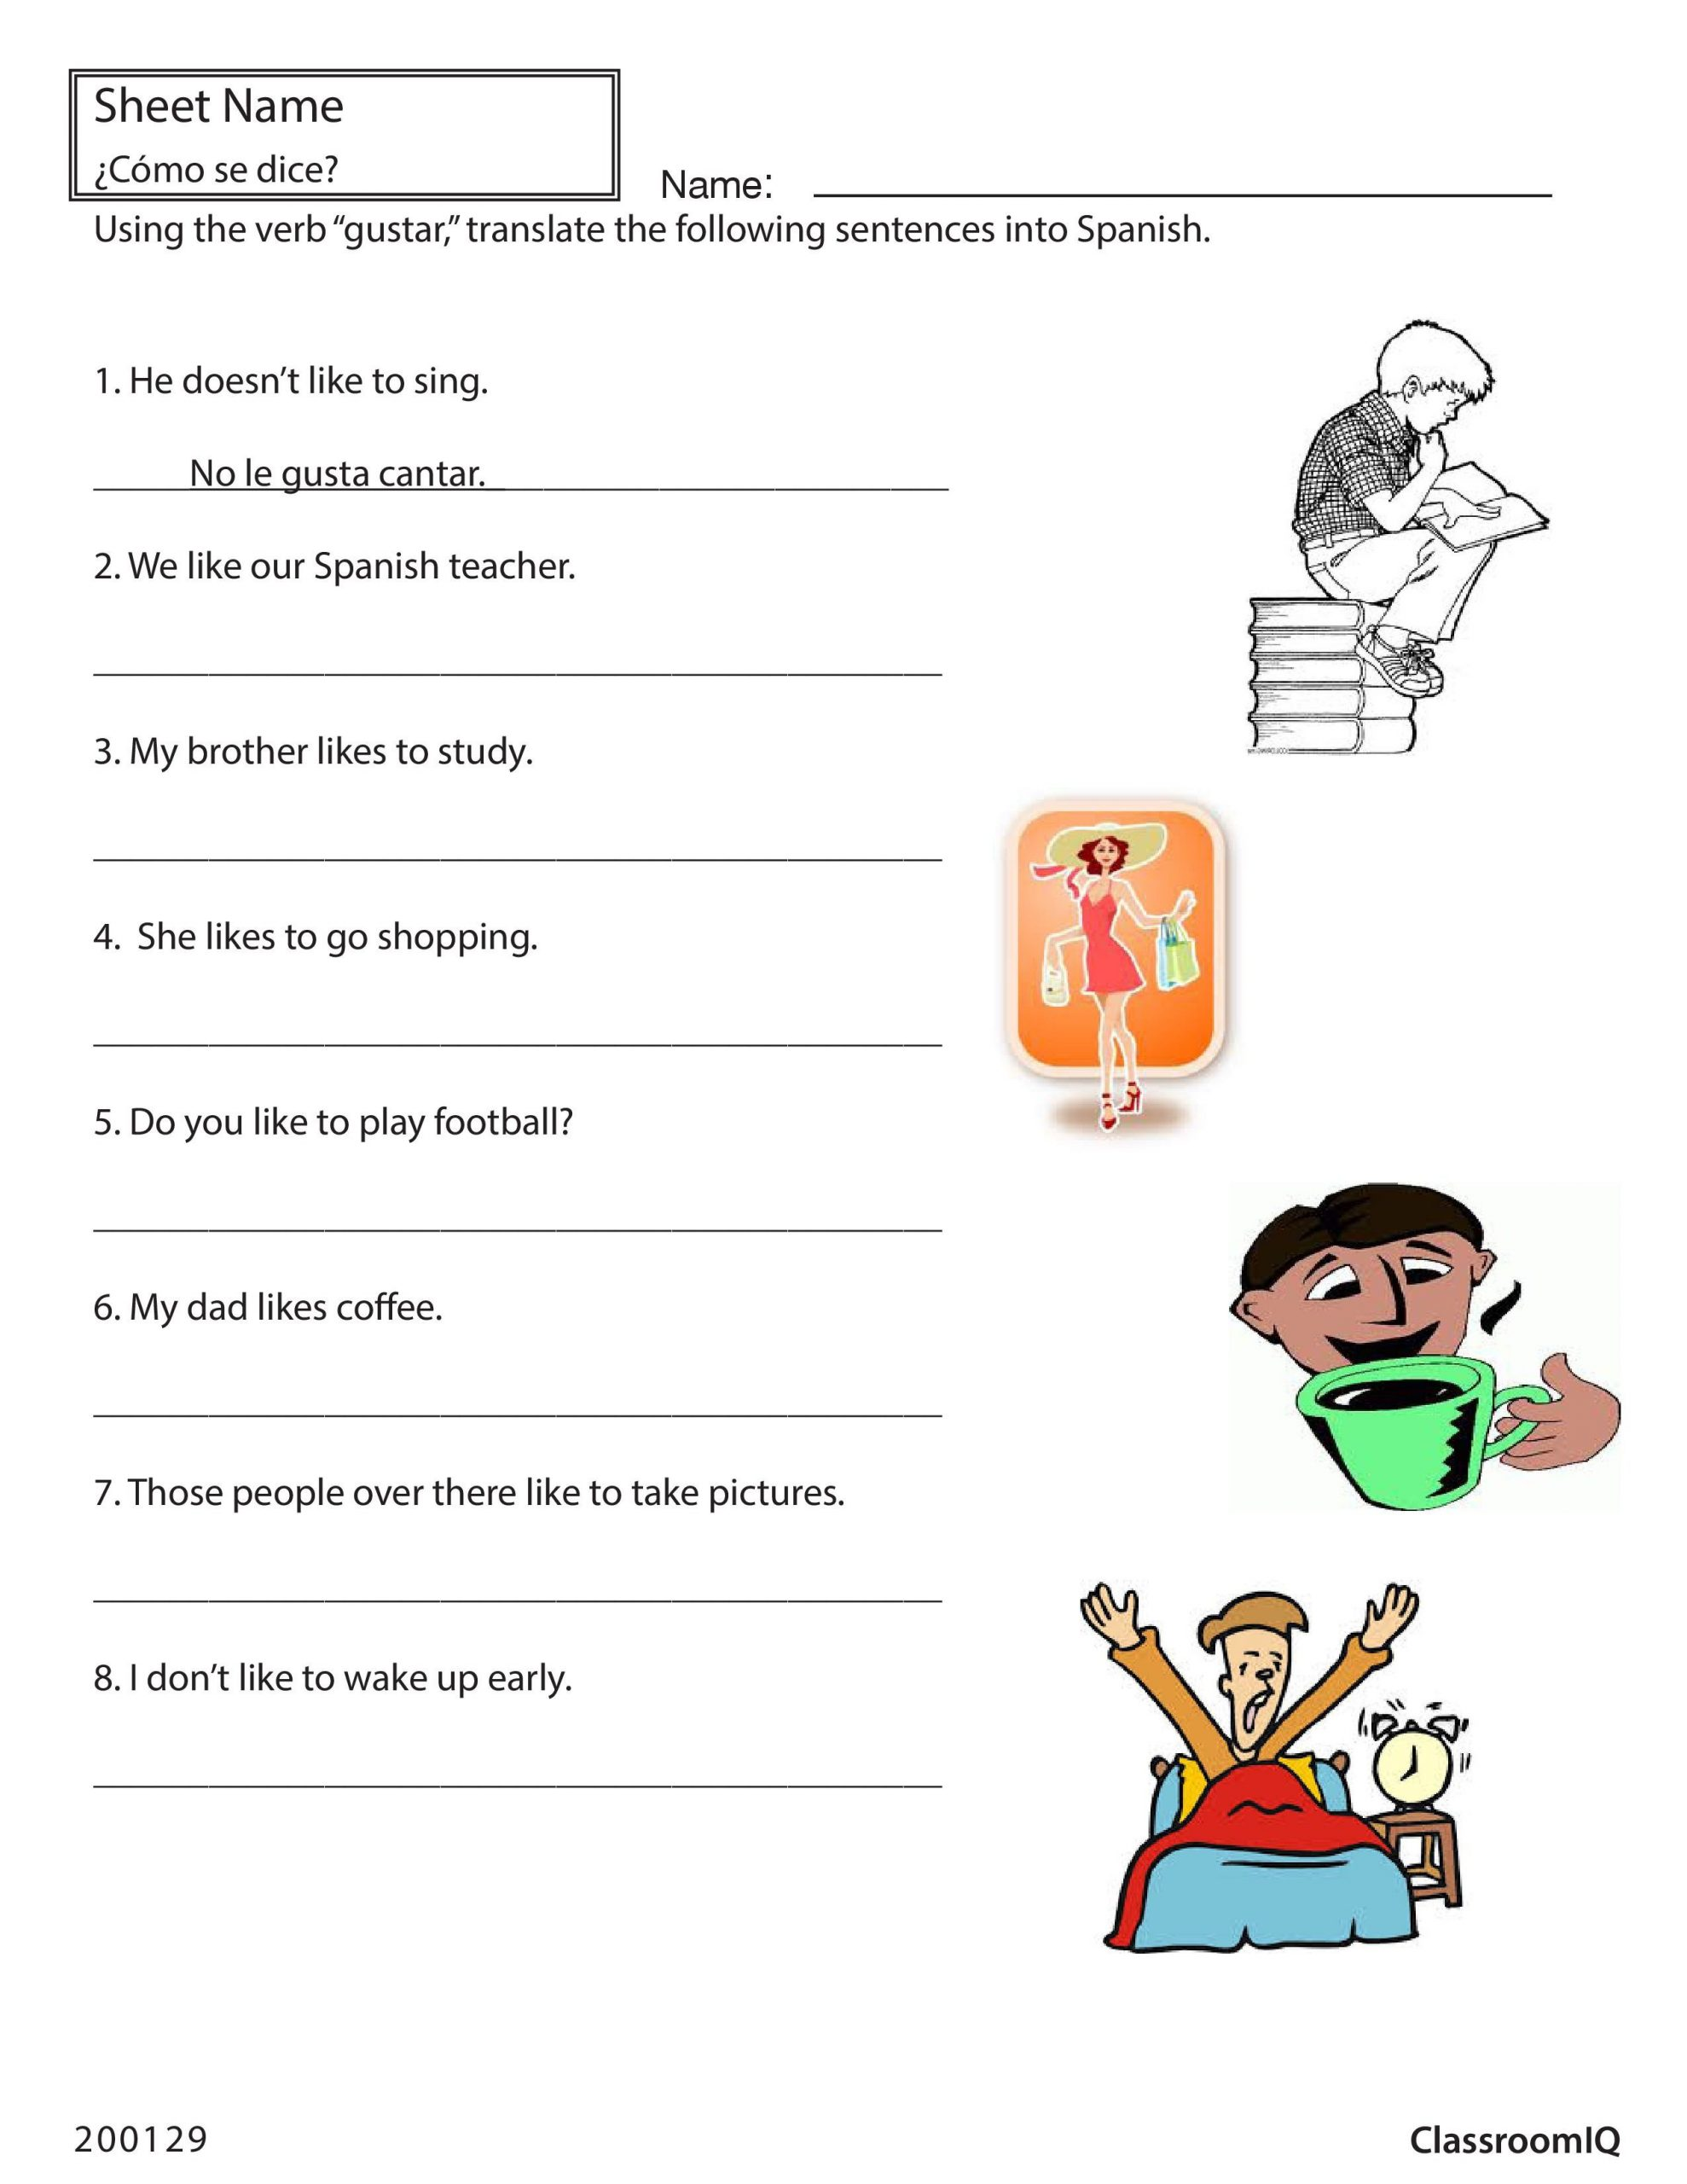 Spanish Reflexive Verbs Worksheet Printable Translate English Sentences with Gustar Spanishworksheet